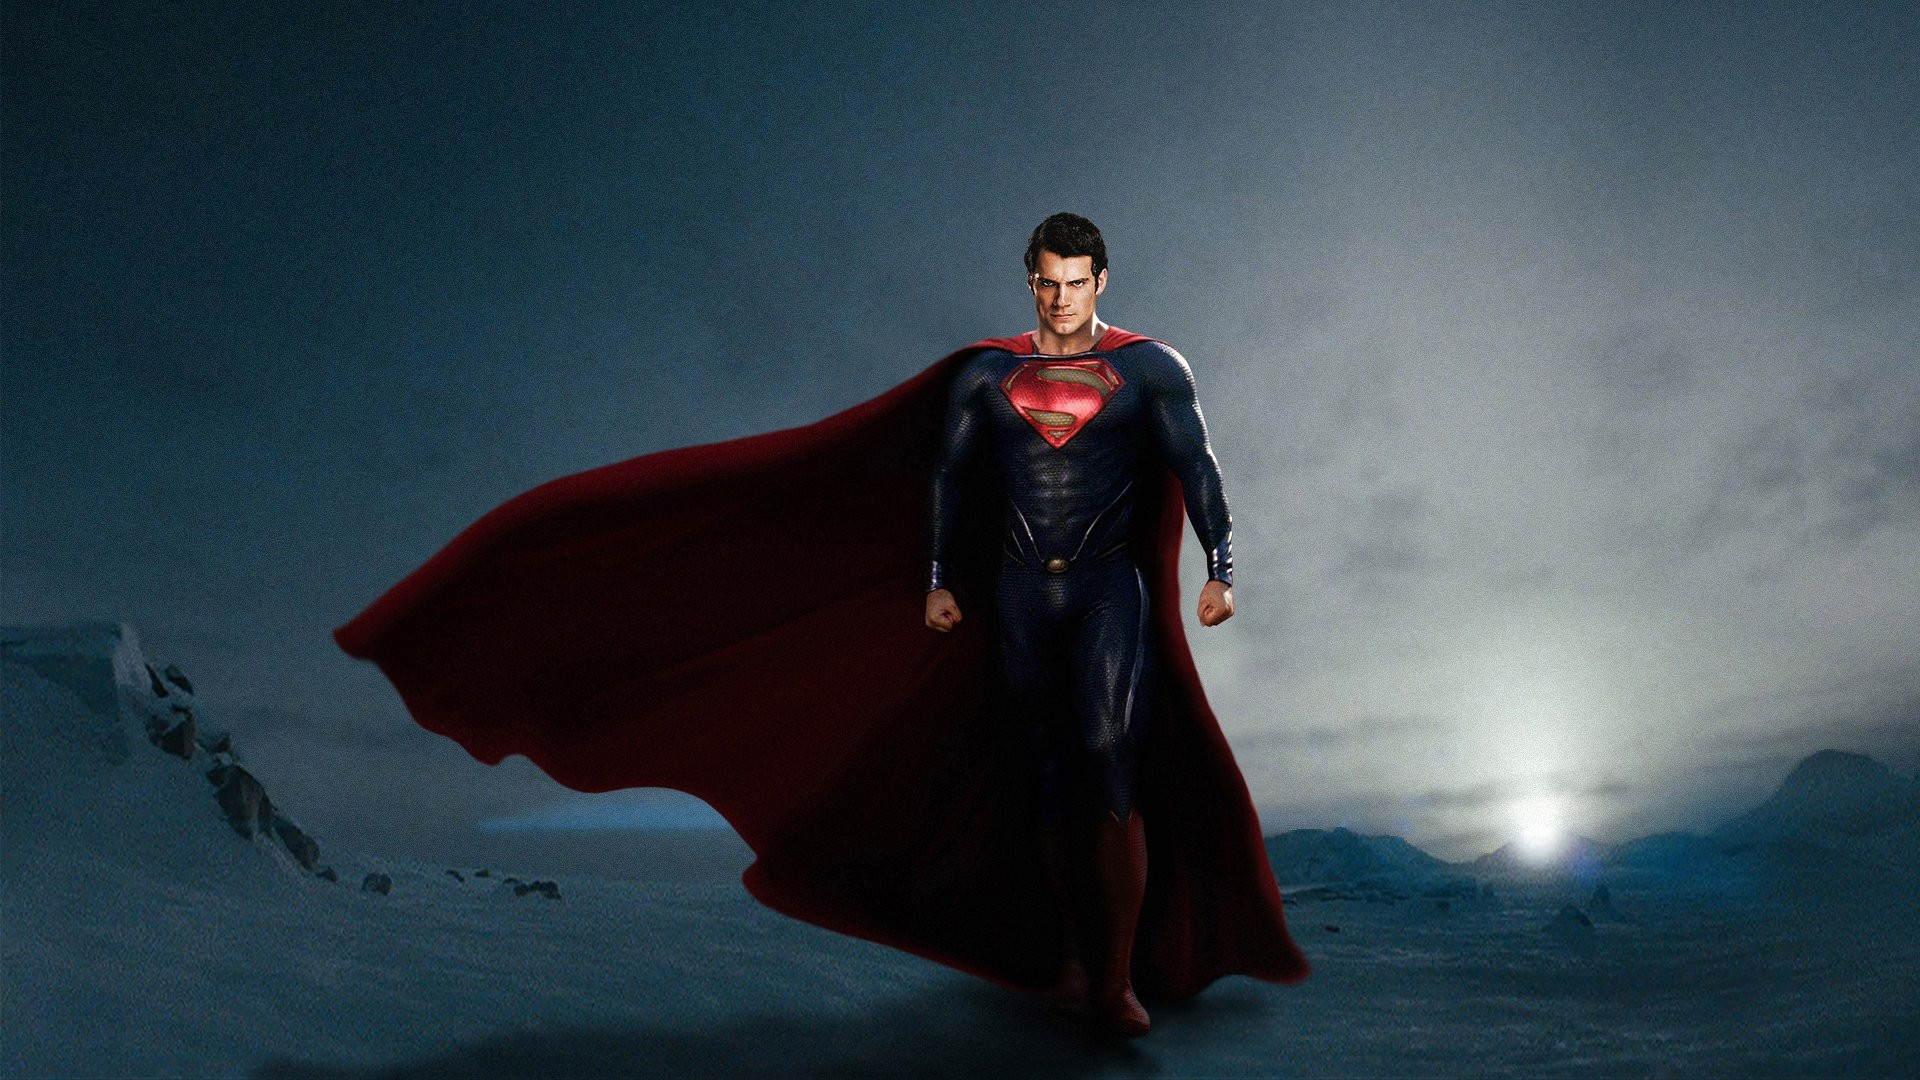 Superman in Man of Steel Wallpapers HD Wallpapers 1920x1080